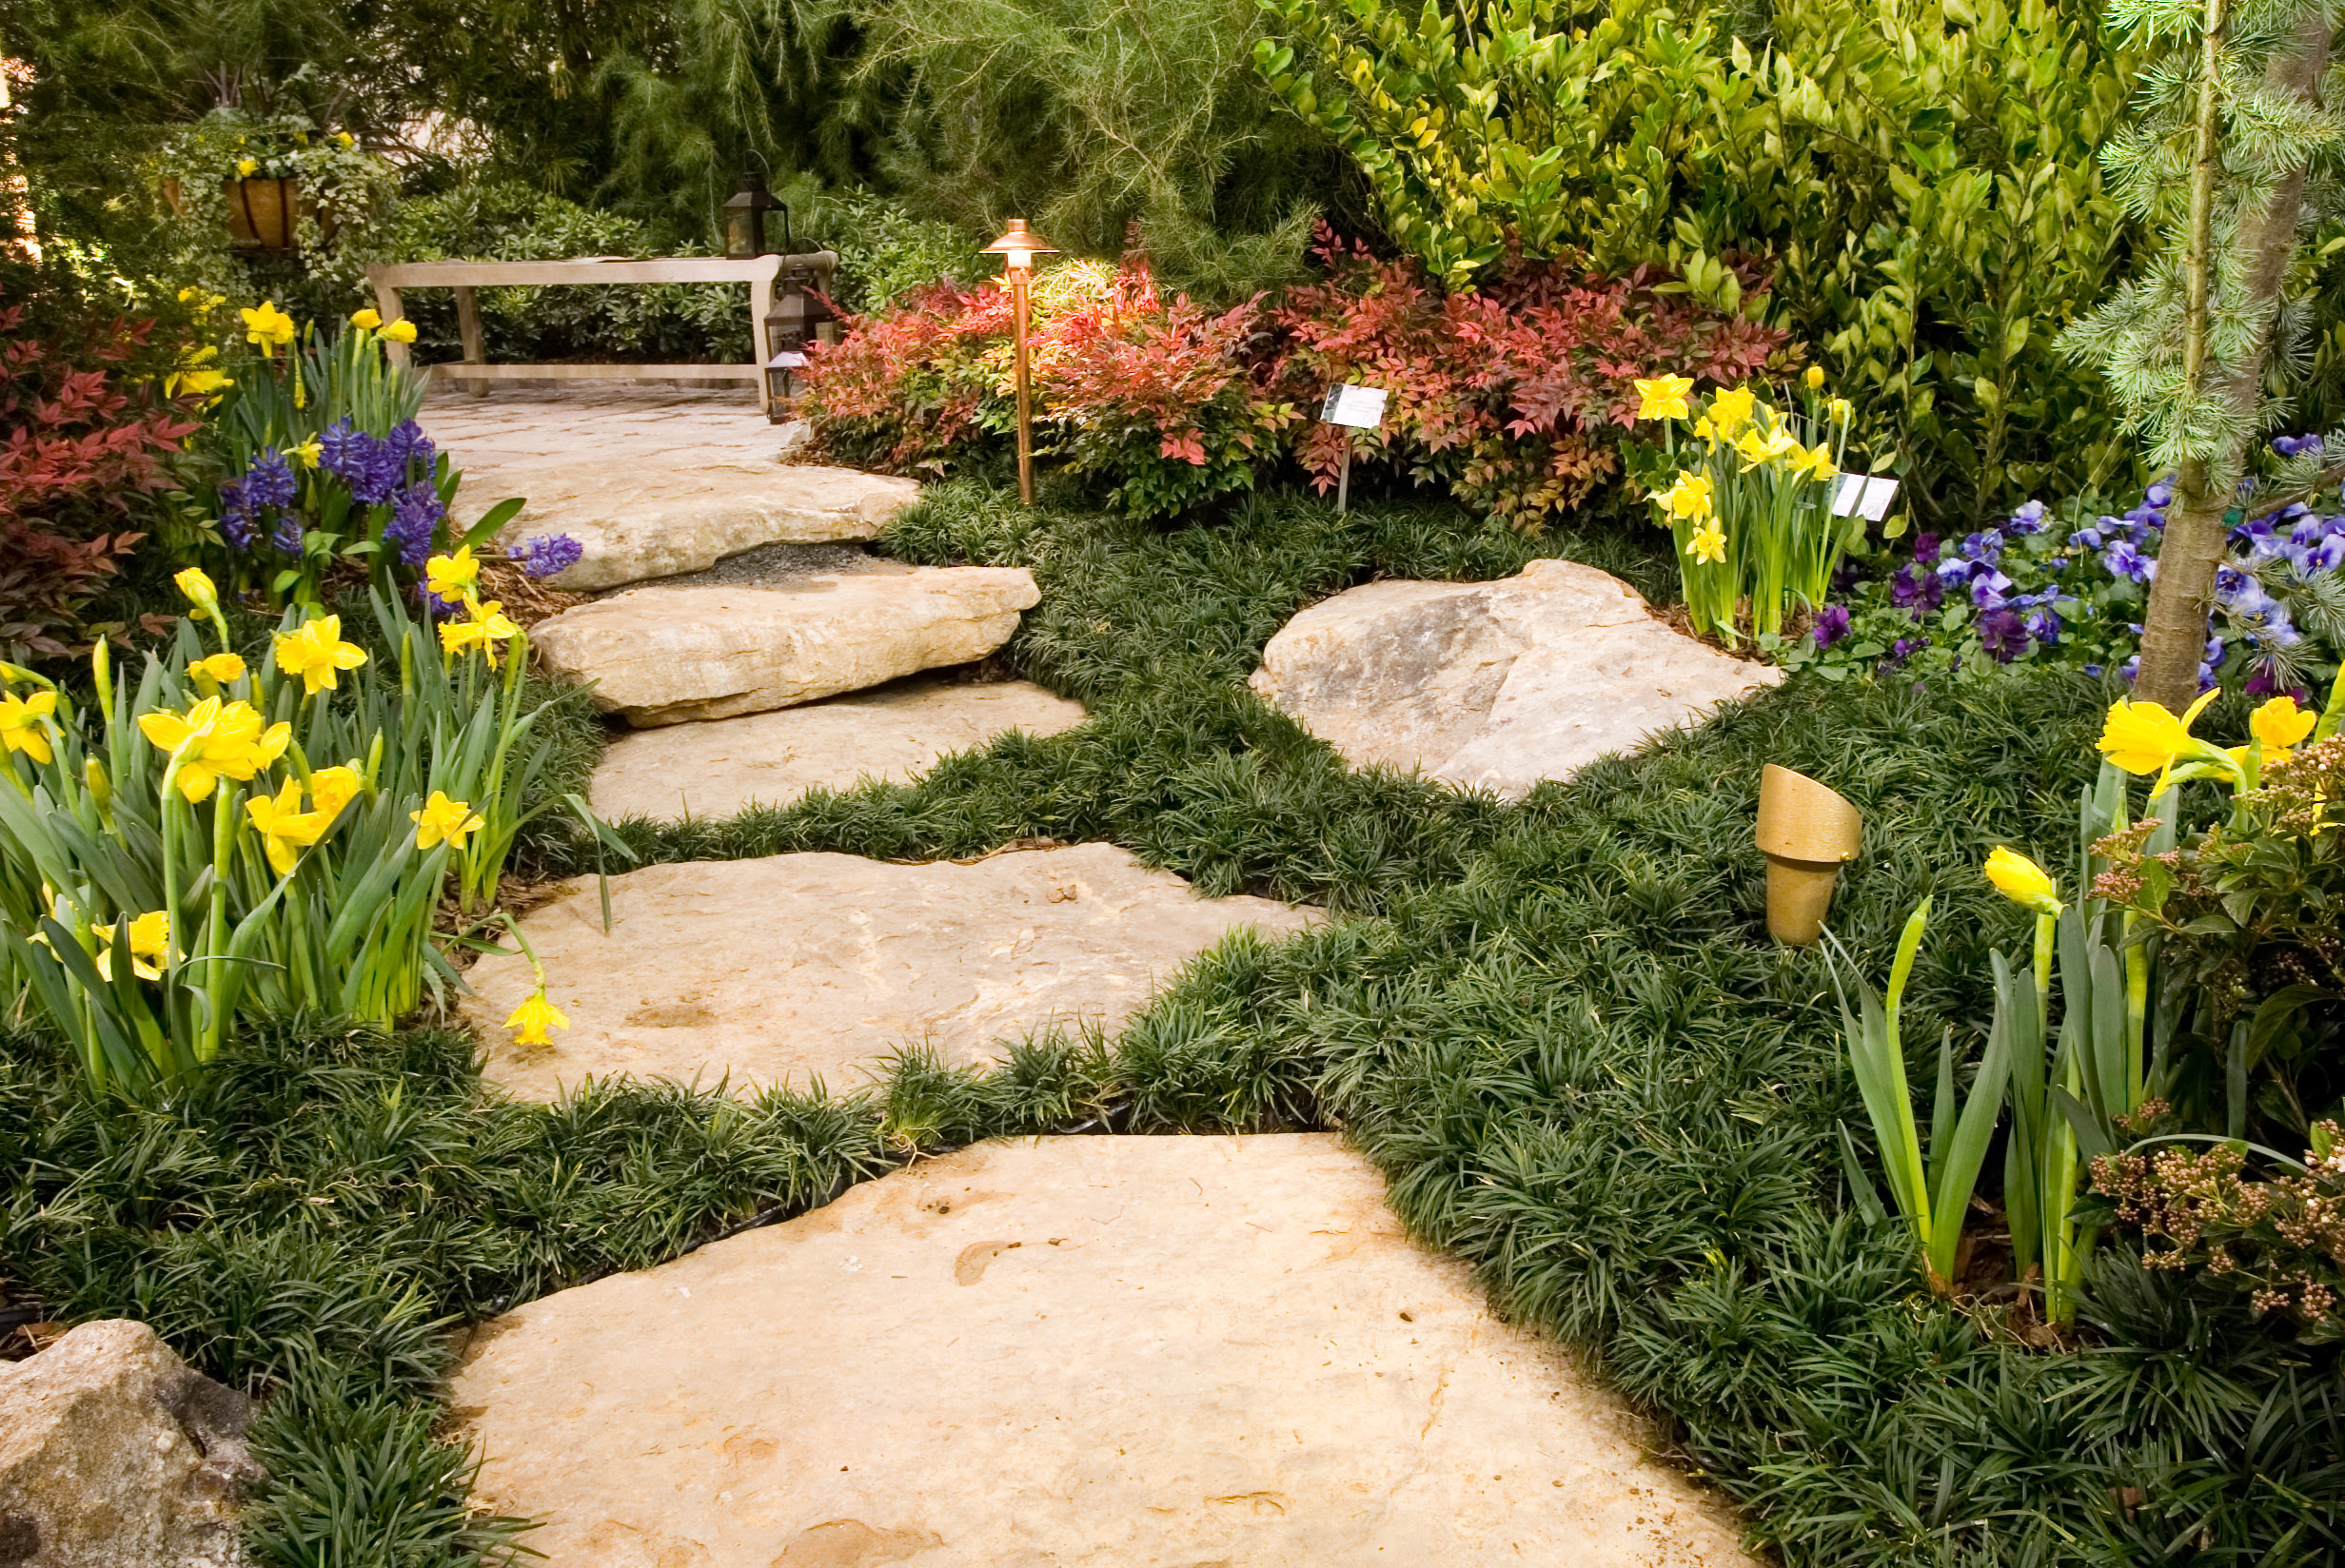 10 Garden Decorations to Bring Life to Your Lawn this Spring